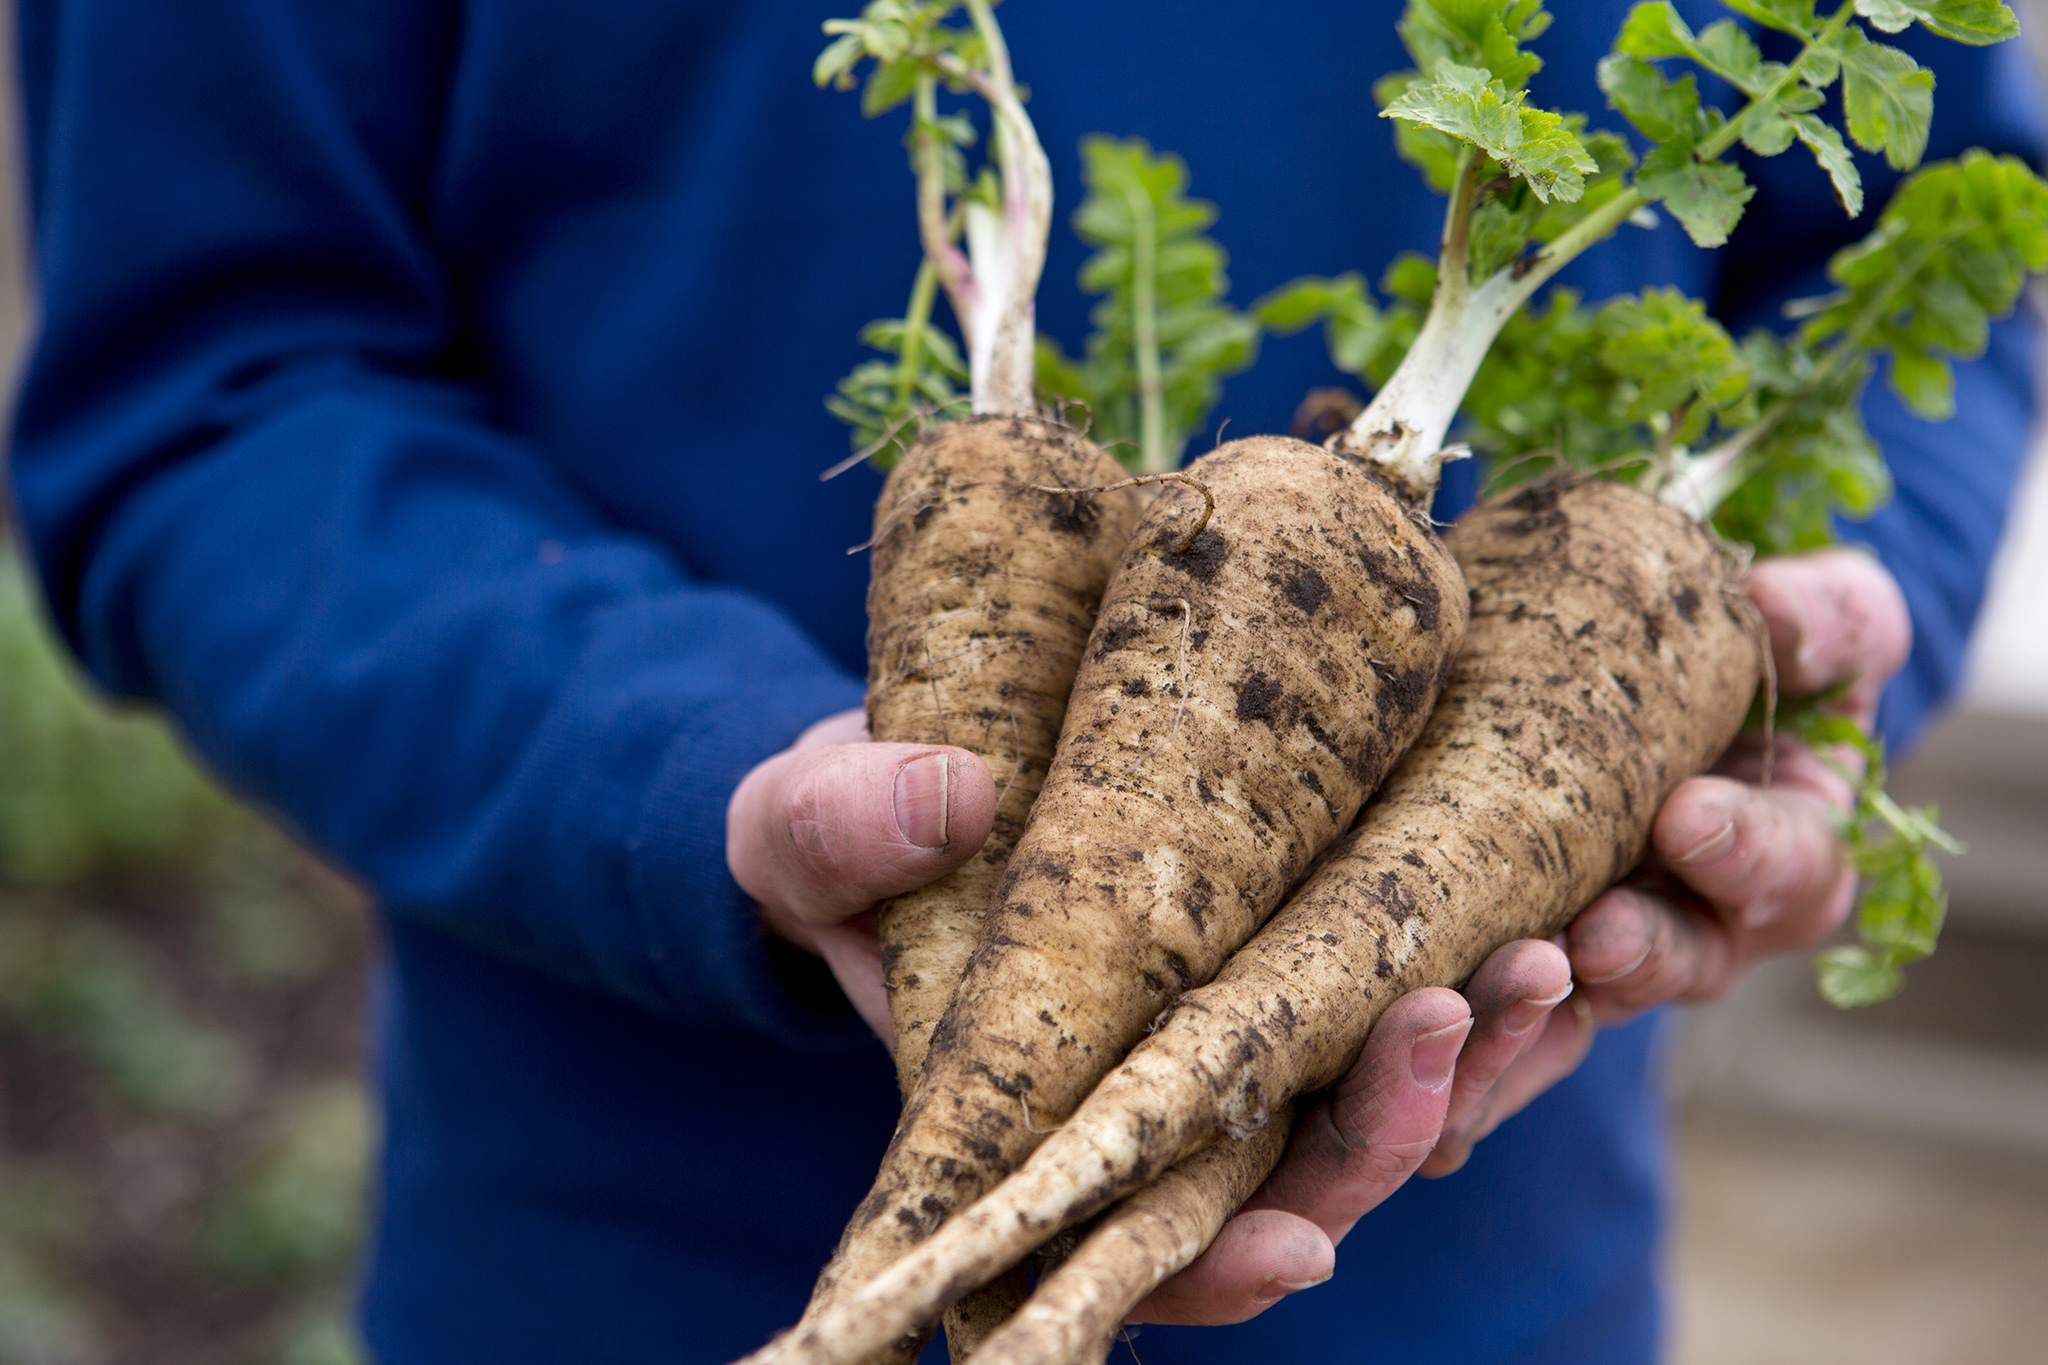 bunch-of-parsnips-2